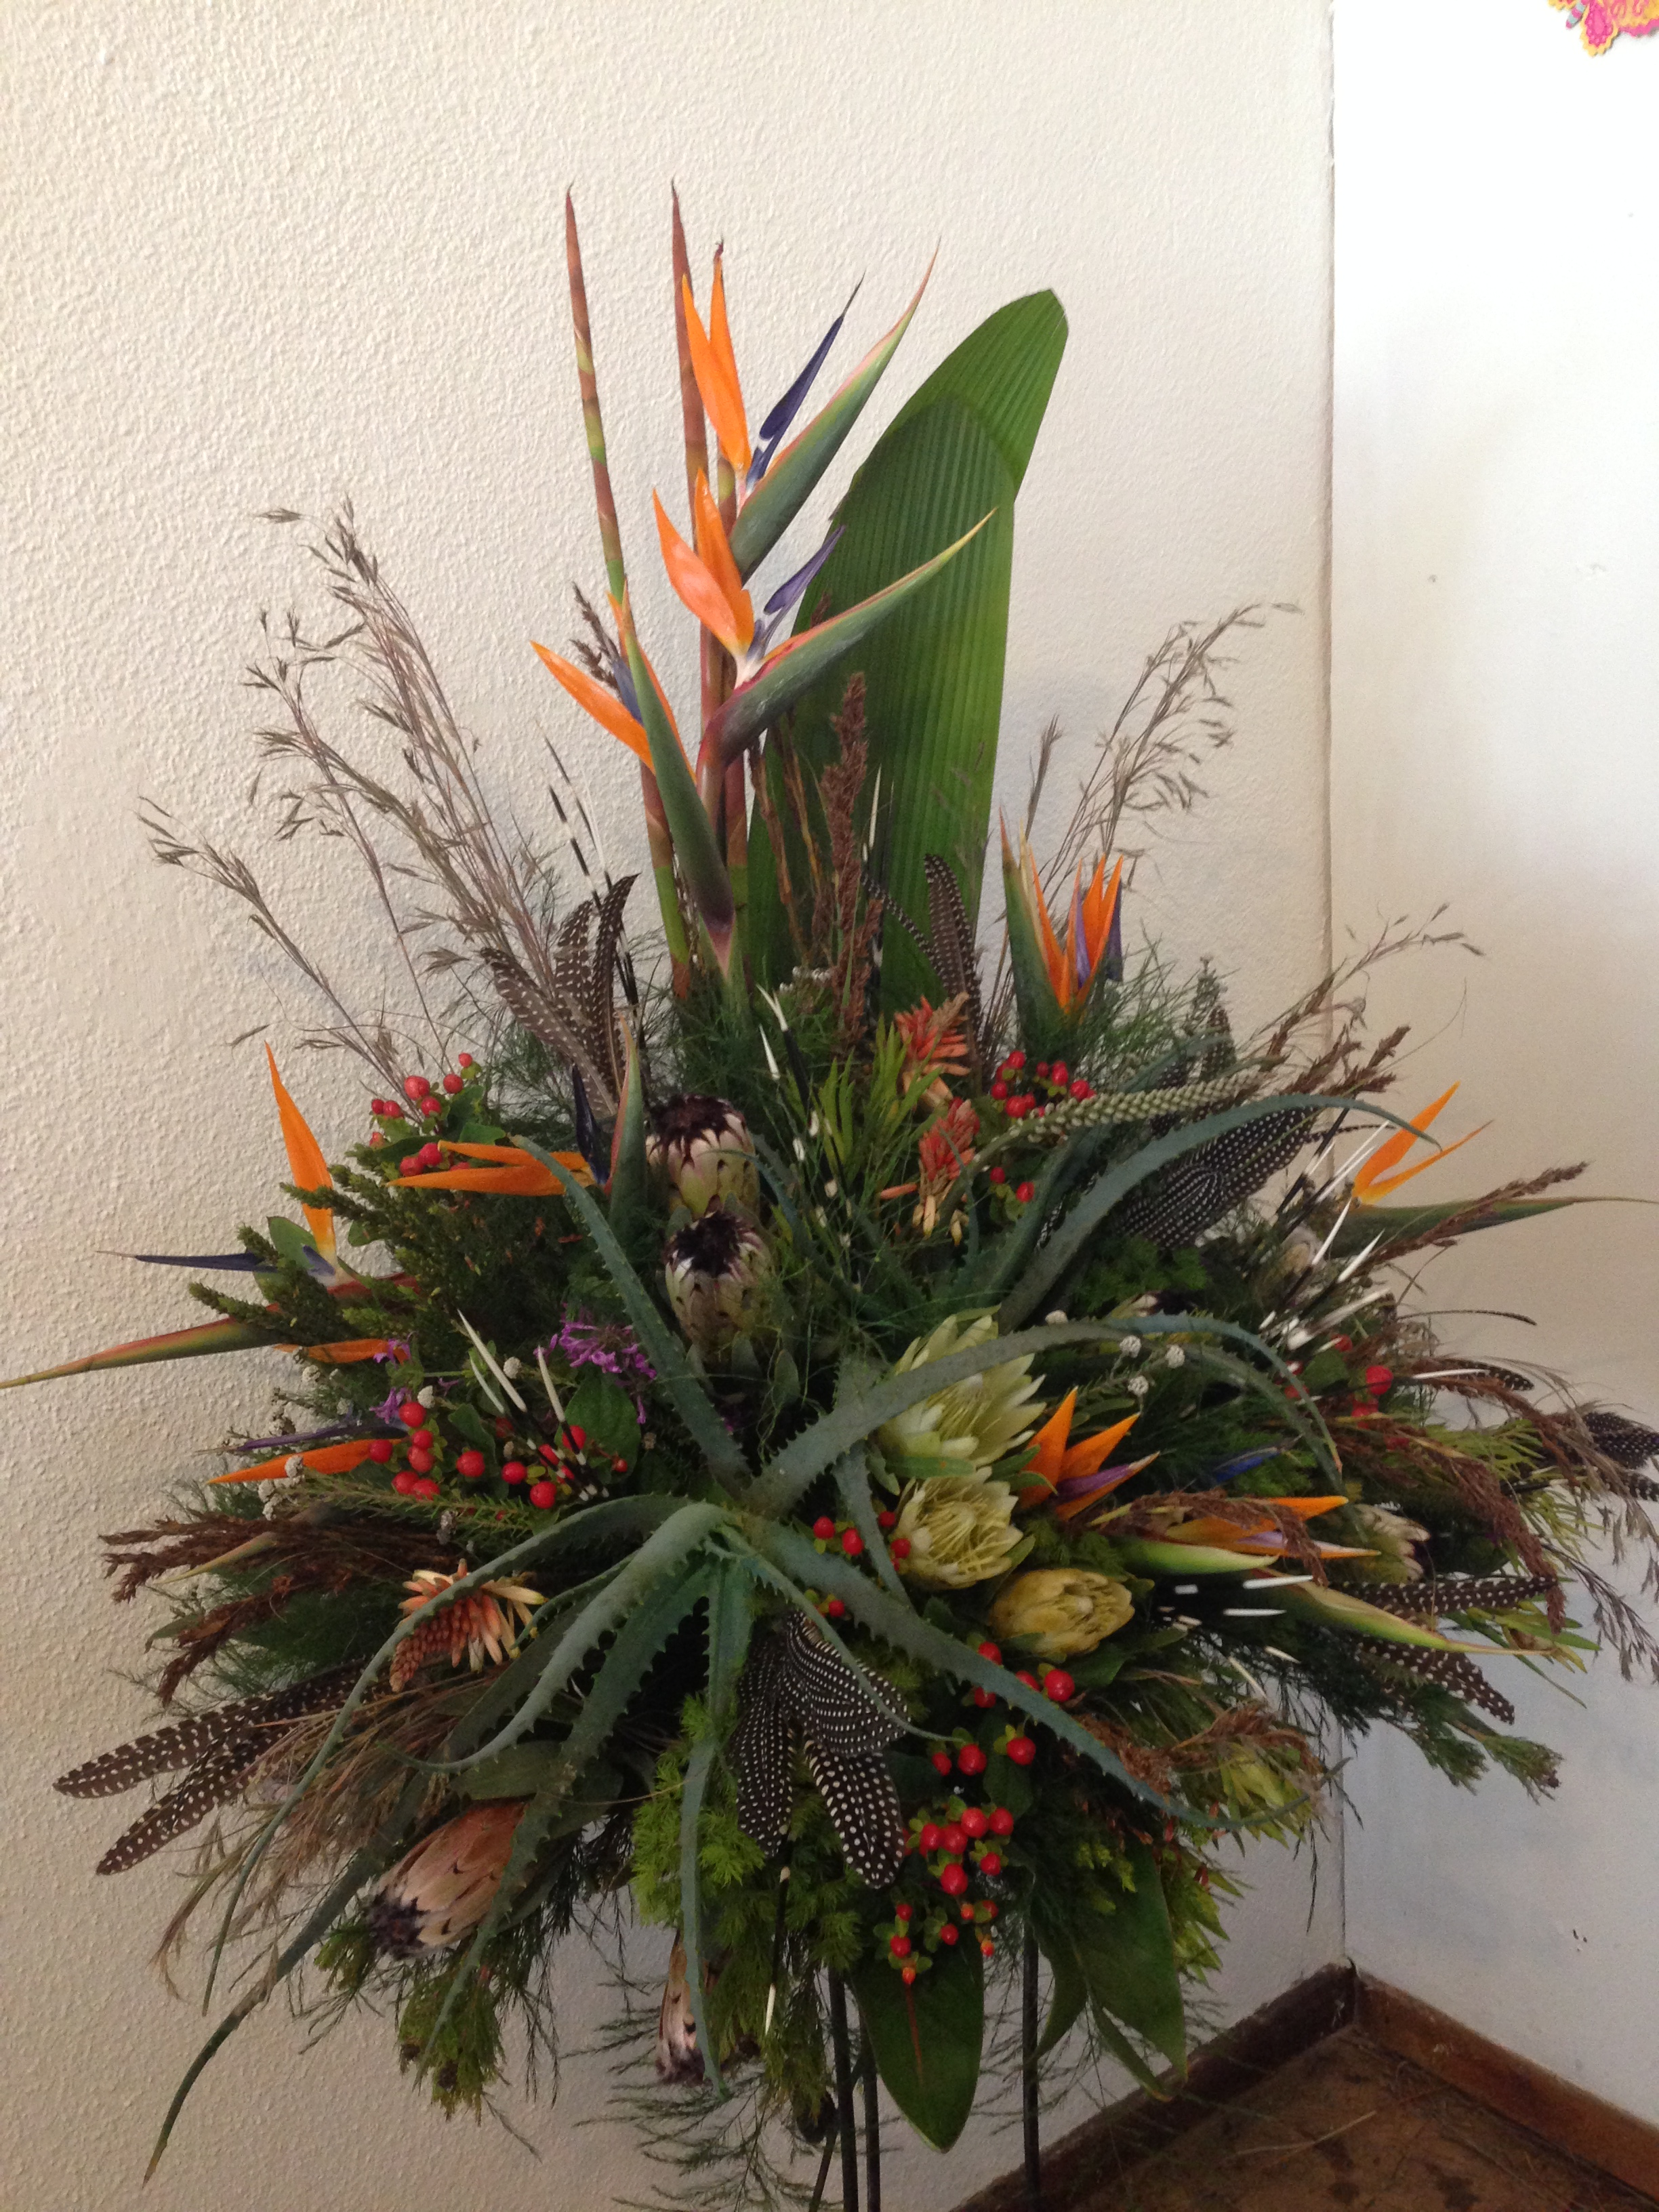 proteas, aloes, grasses and wild flower creation